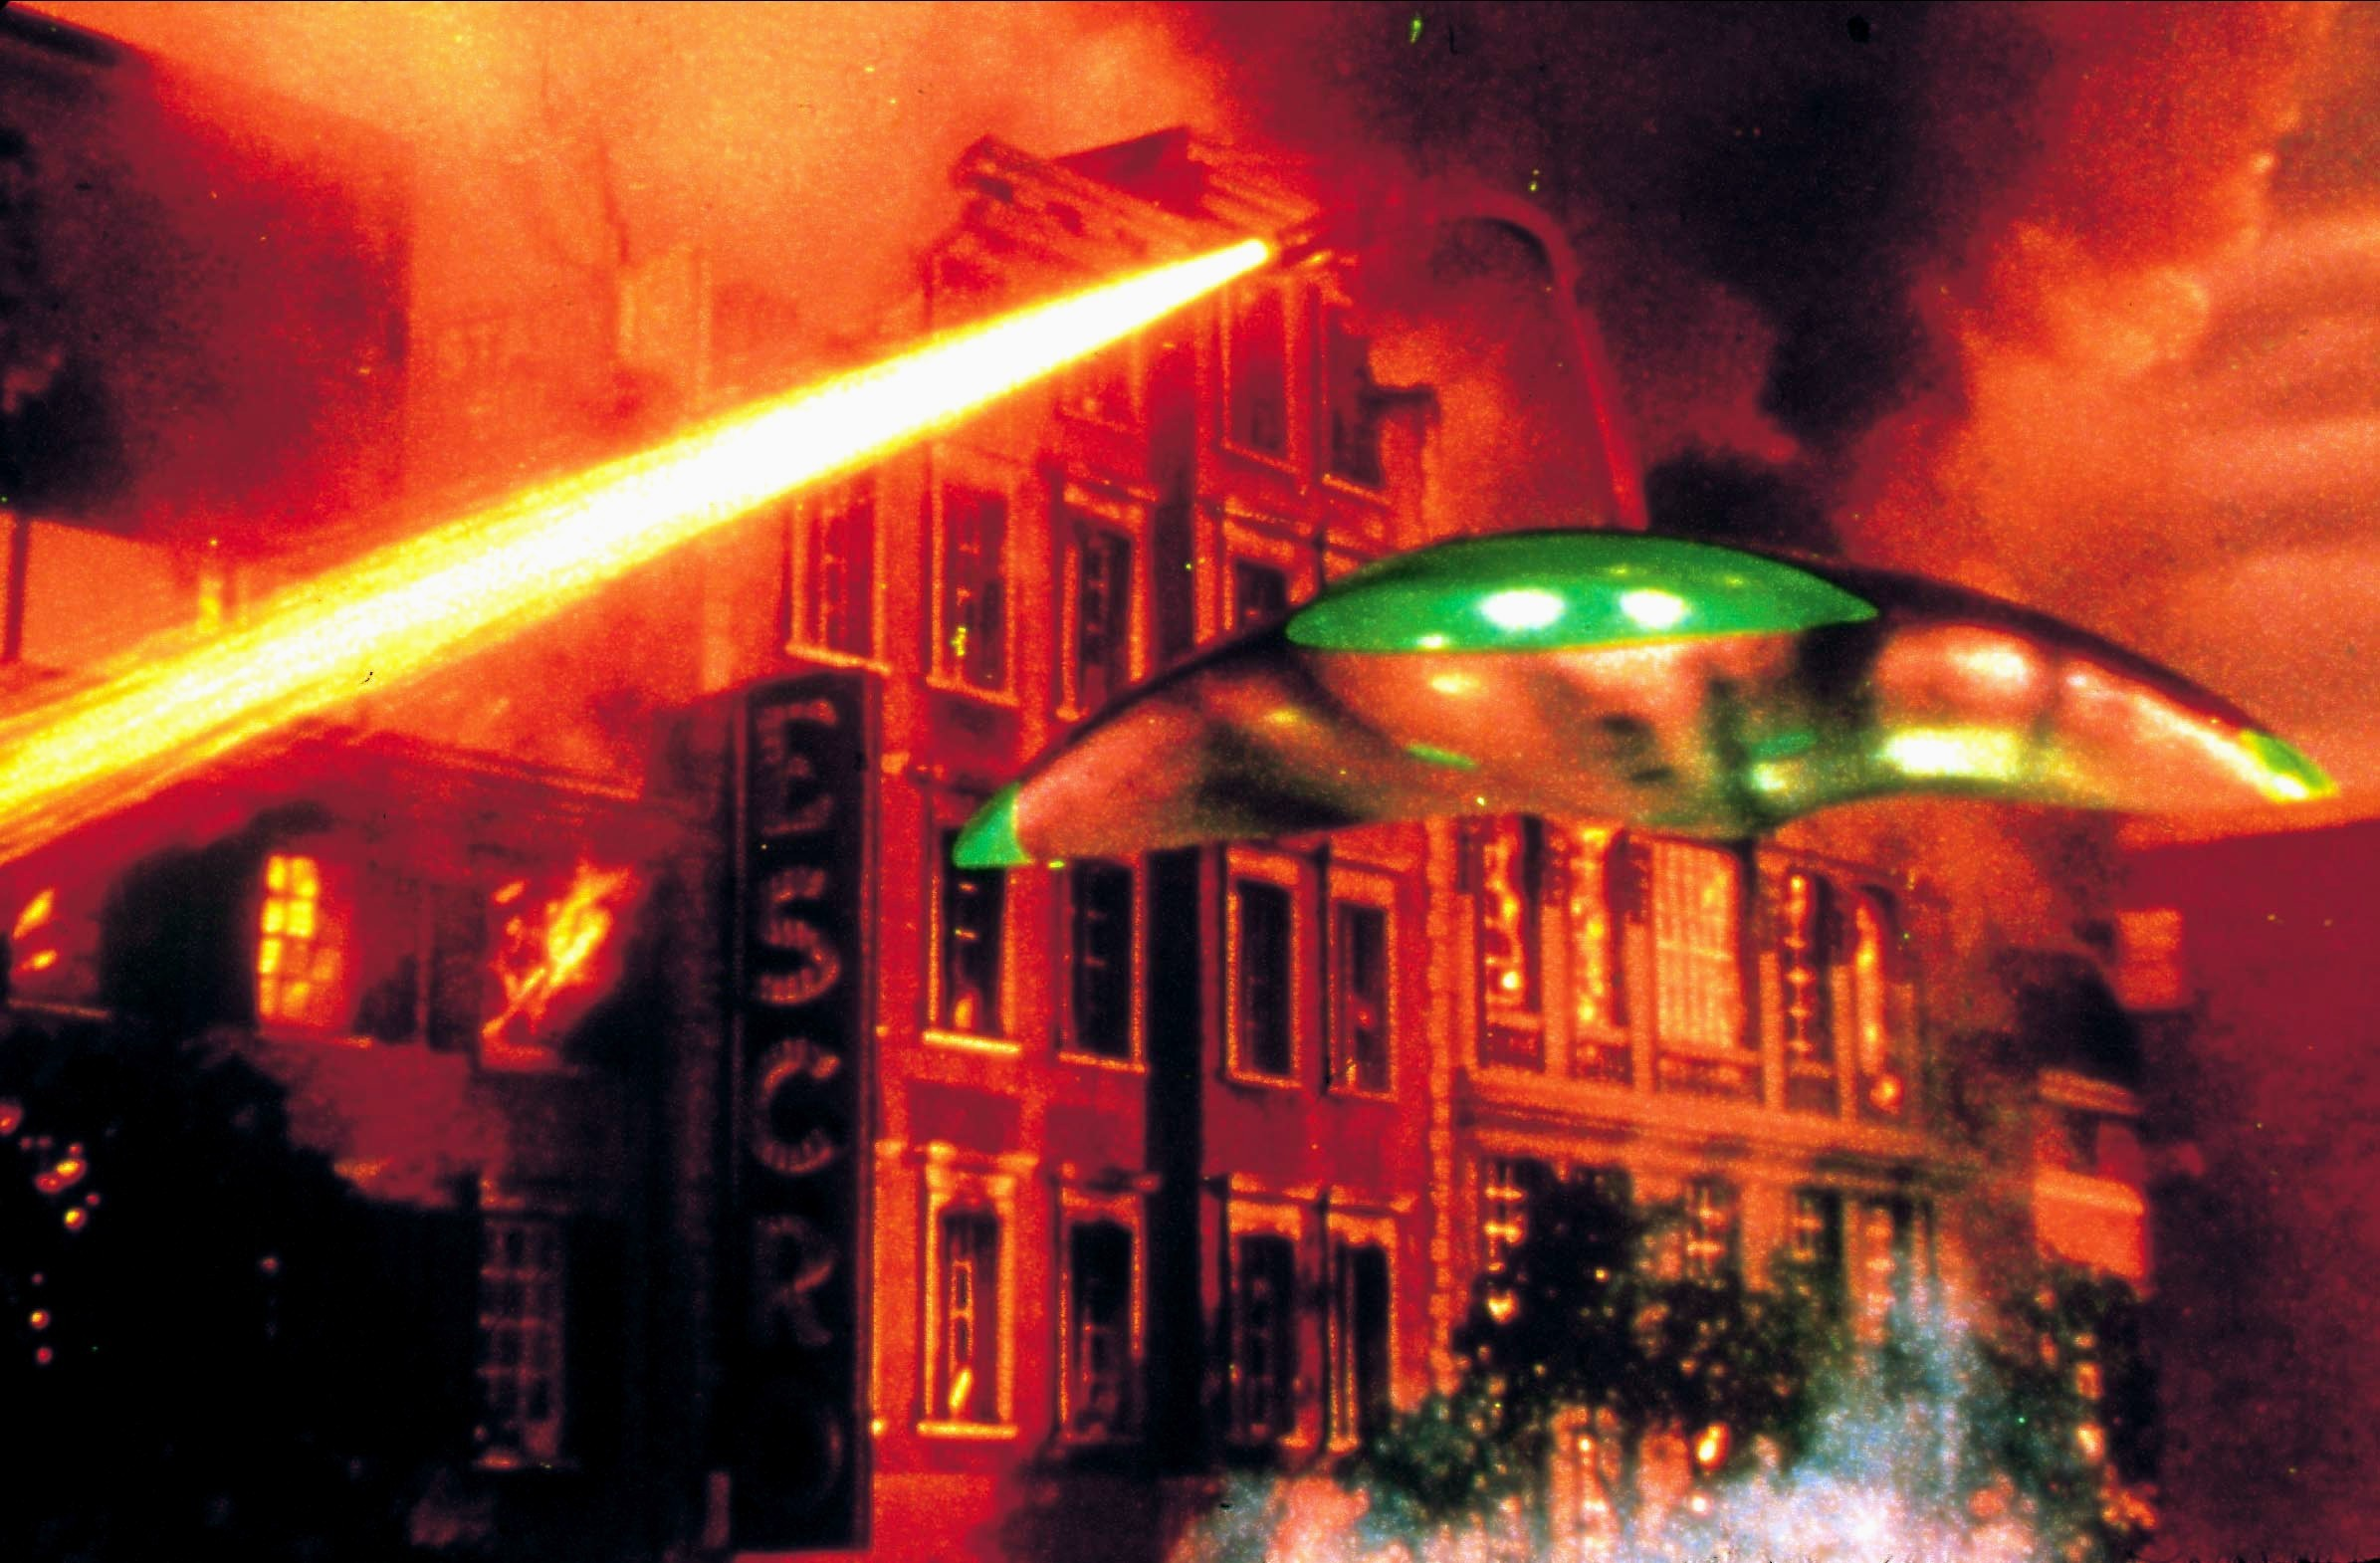 Alien spacecraft in the 1953 film The War of the Worlds.